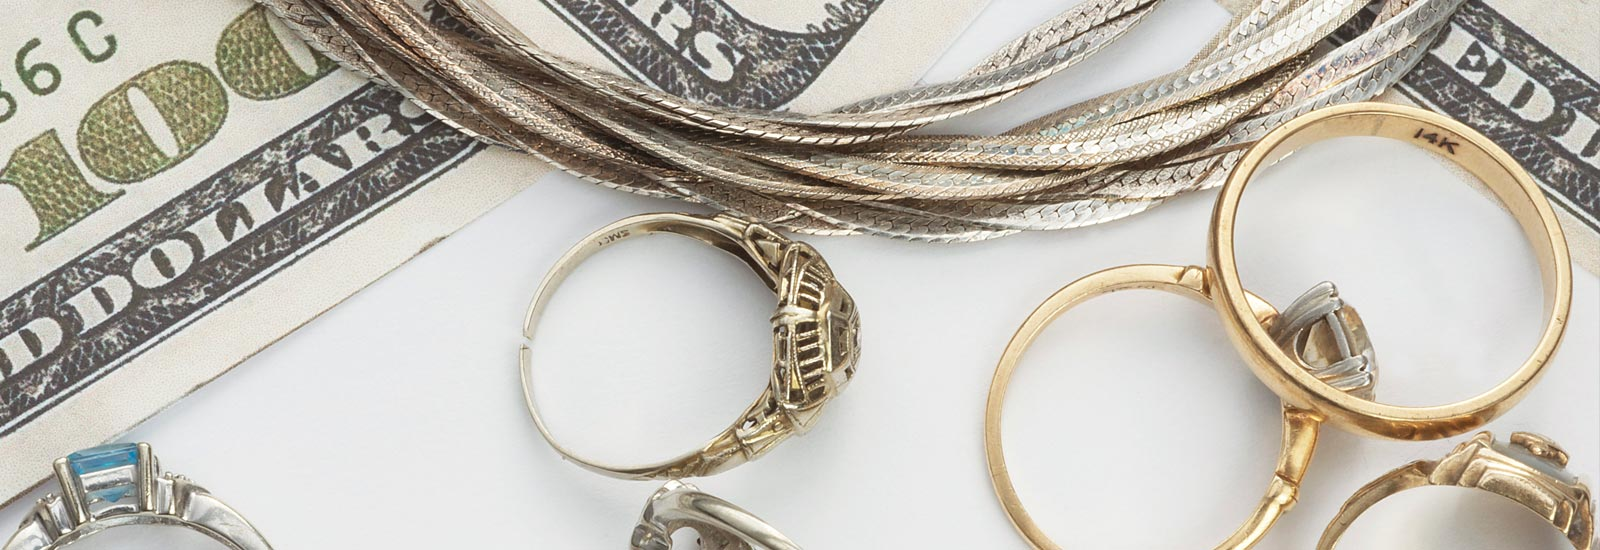 Taking pictures of jewelry to sell Jewelry photography tips - how to take pictures of jewelry